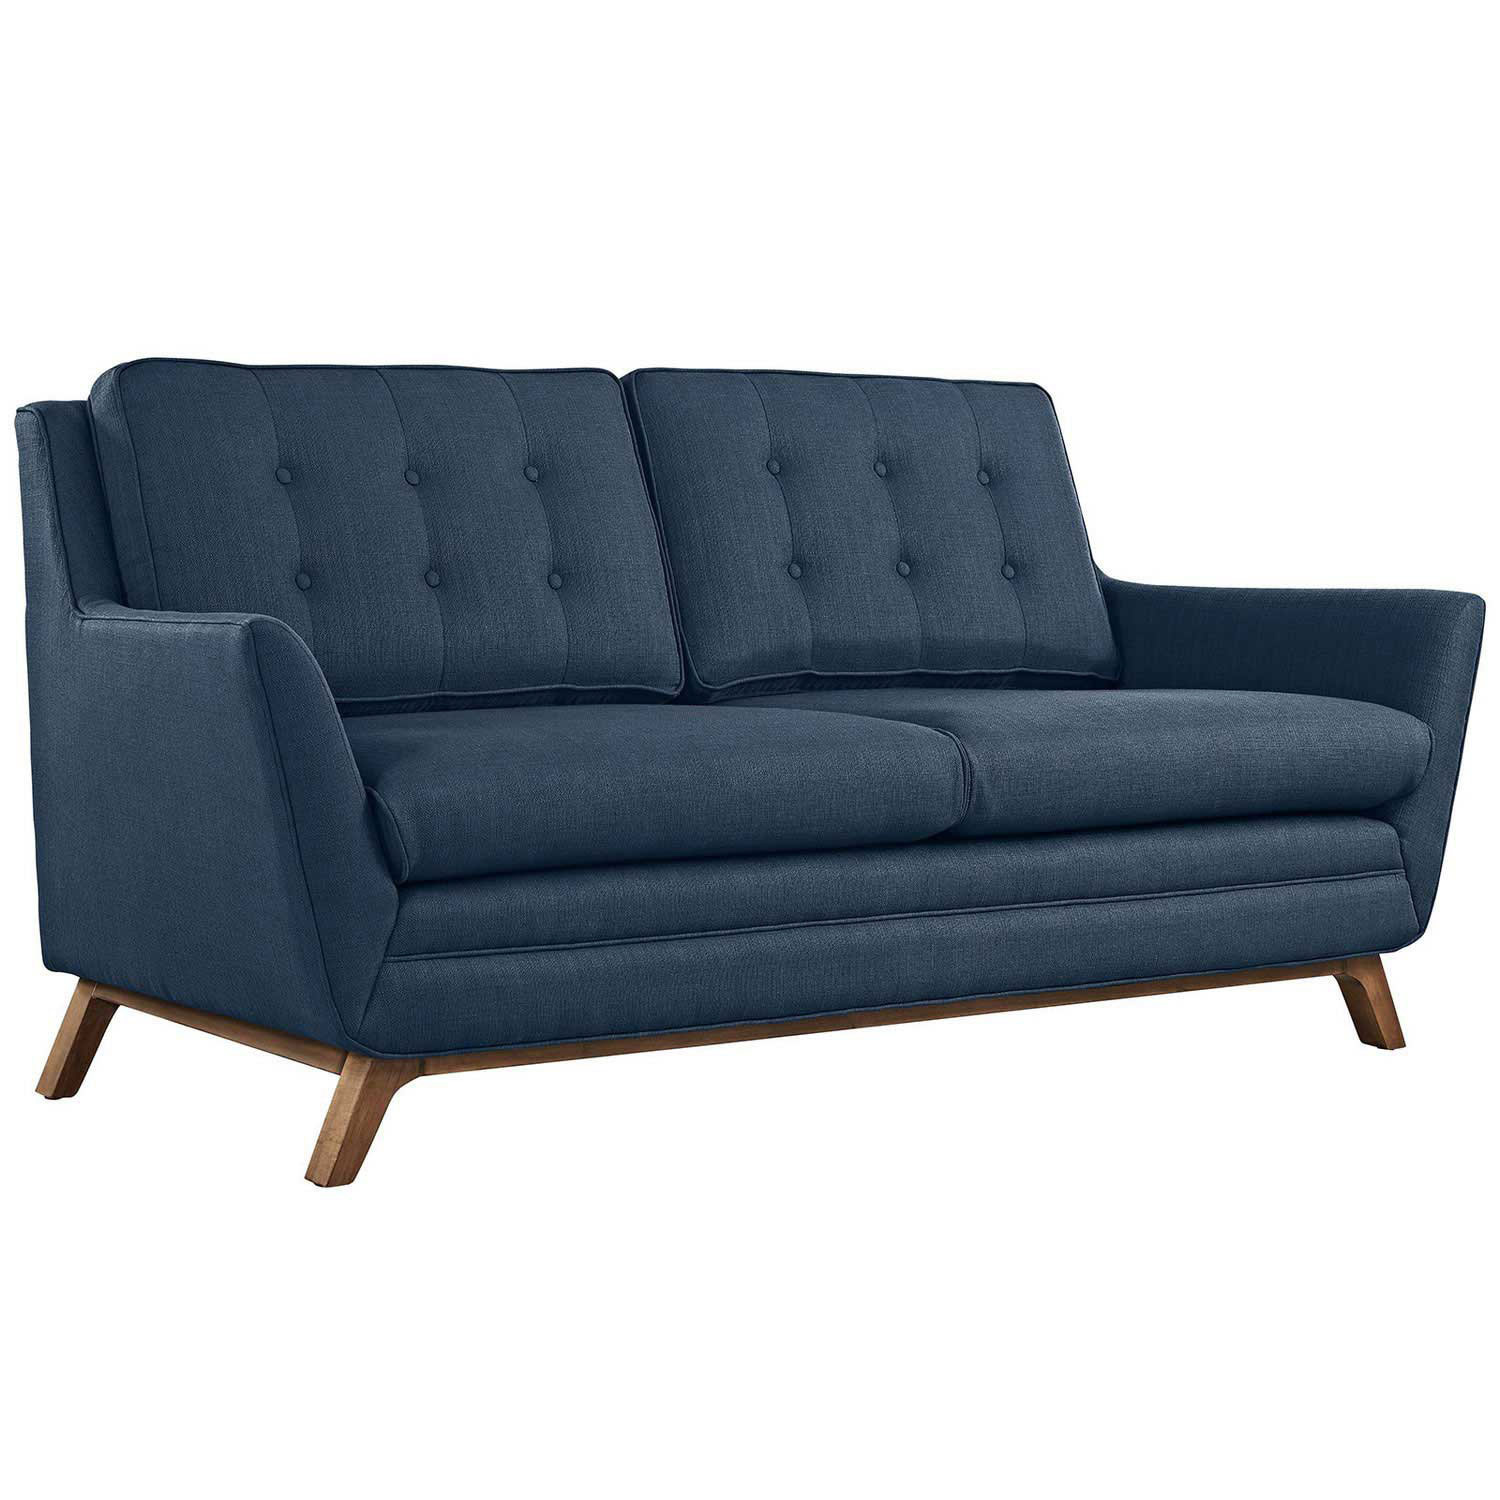 Modway Beguile Fabric Loveseat - Azure